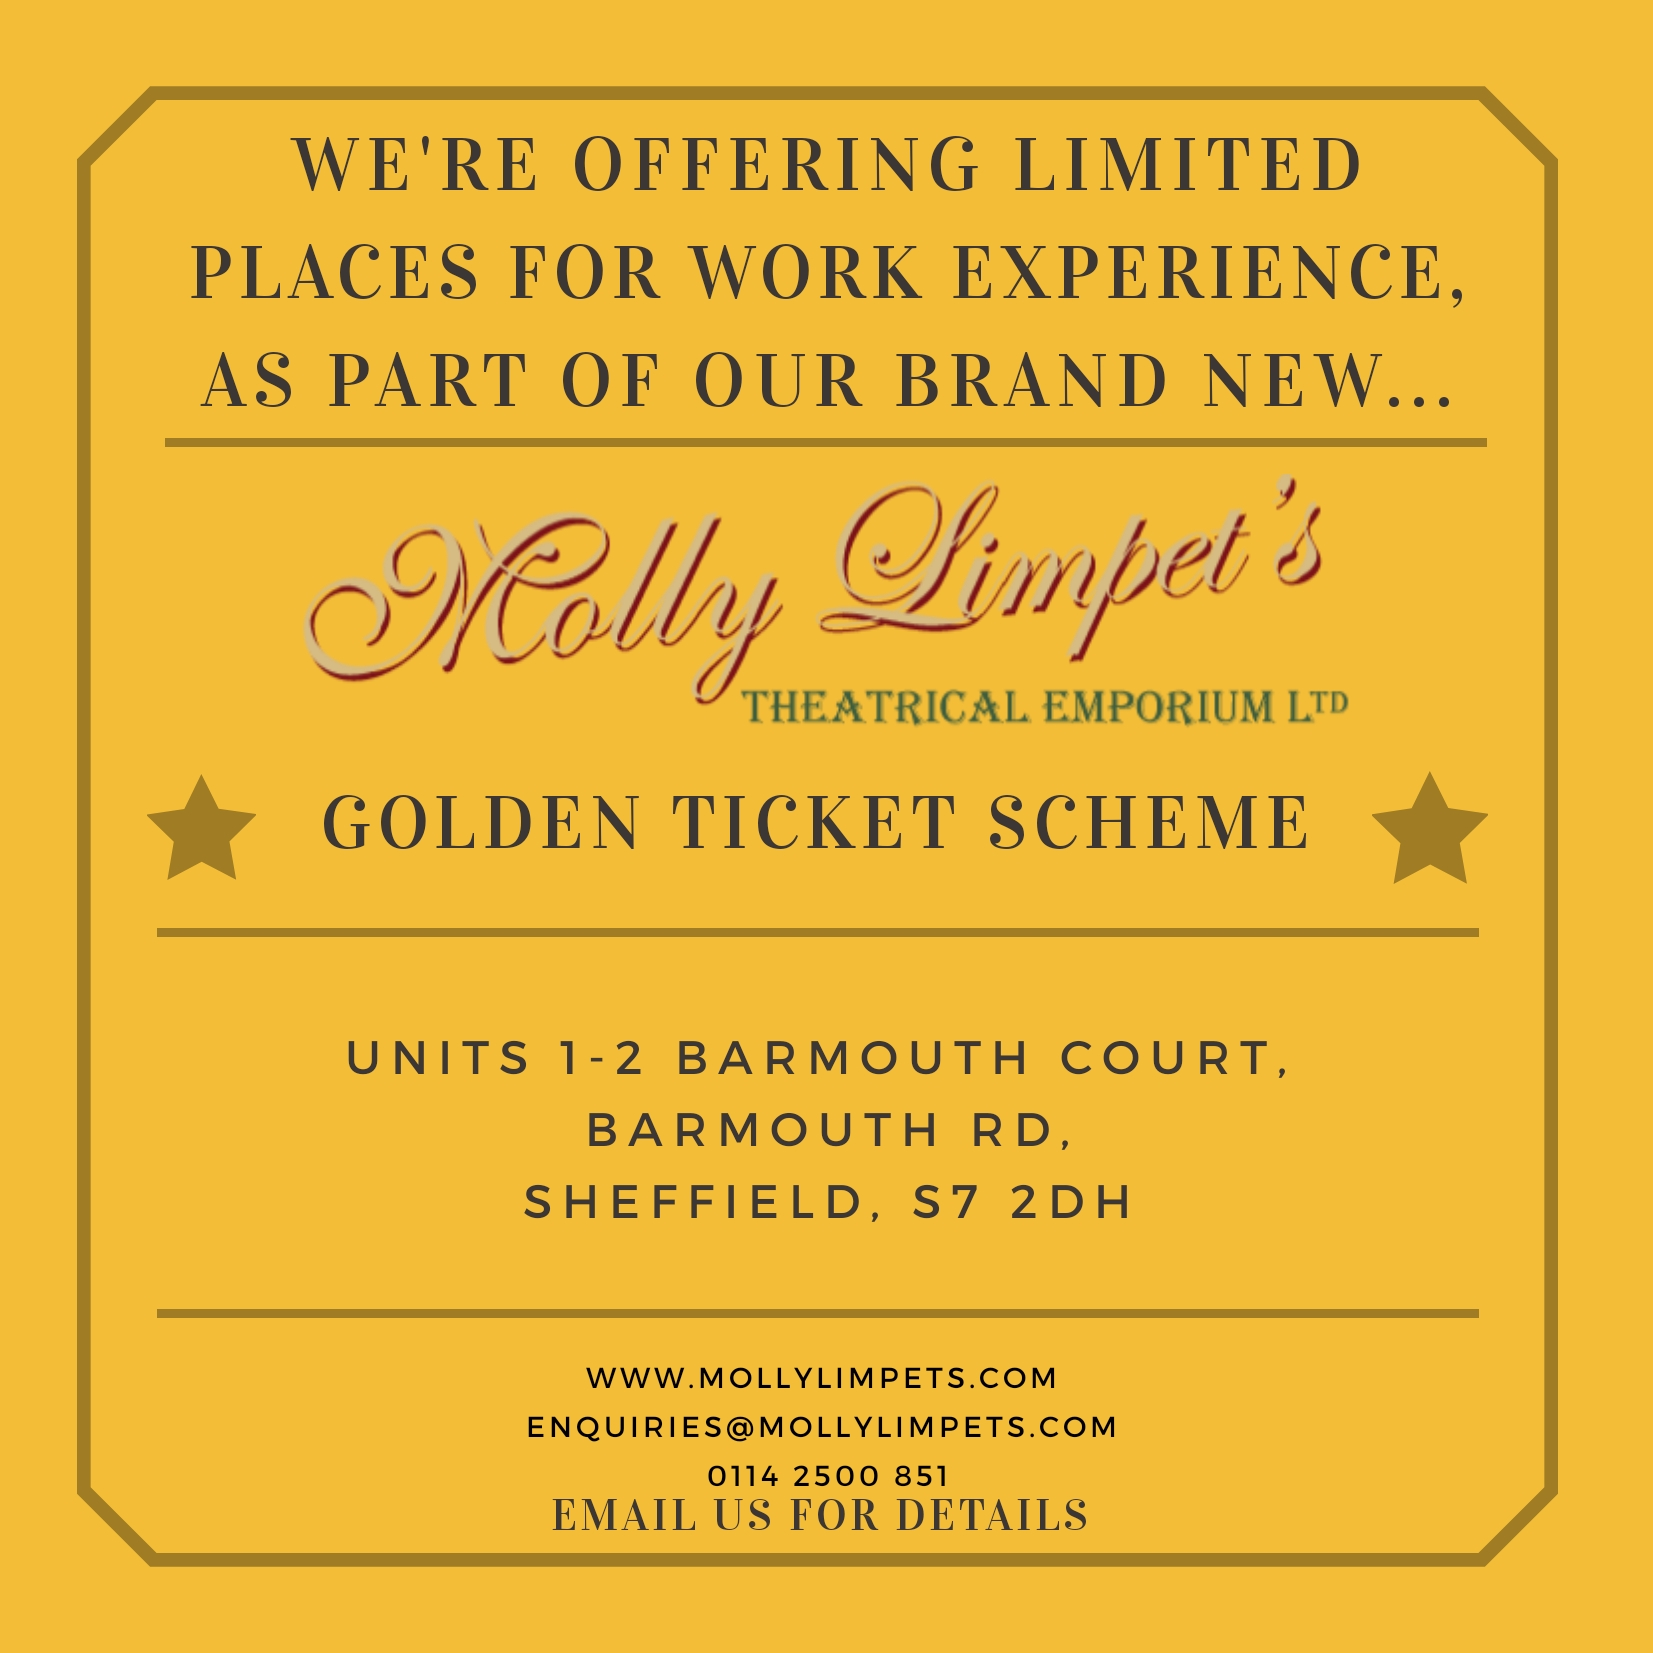 Molly Limpet's Work Experience Scheme